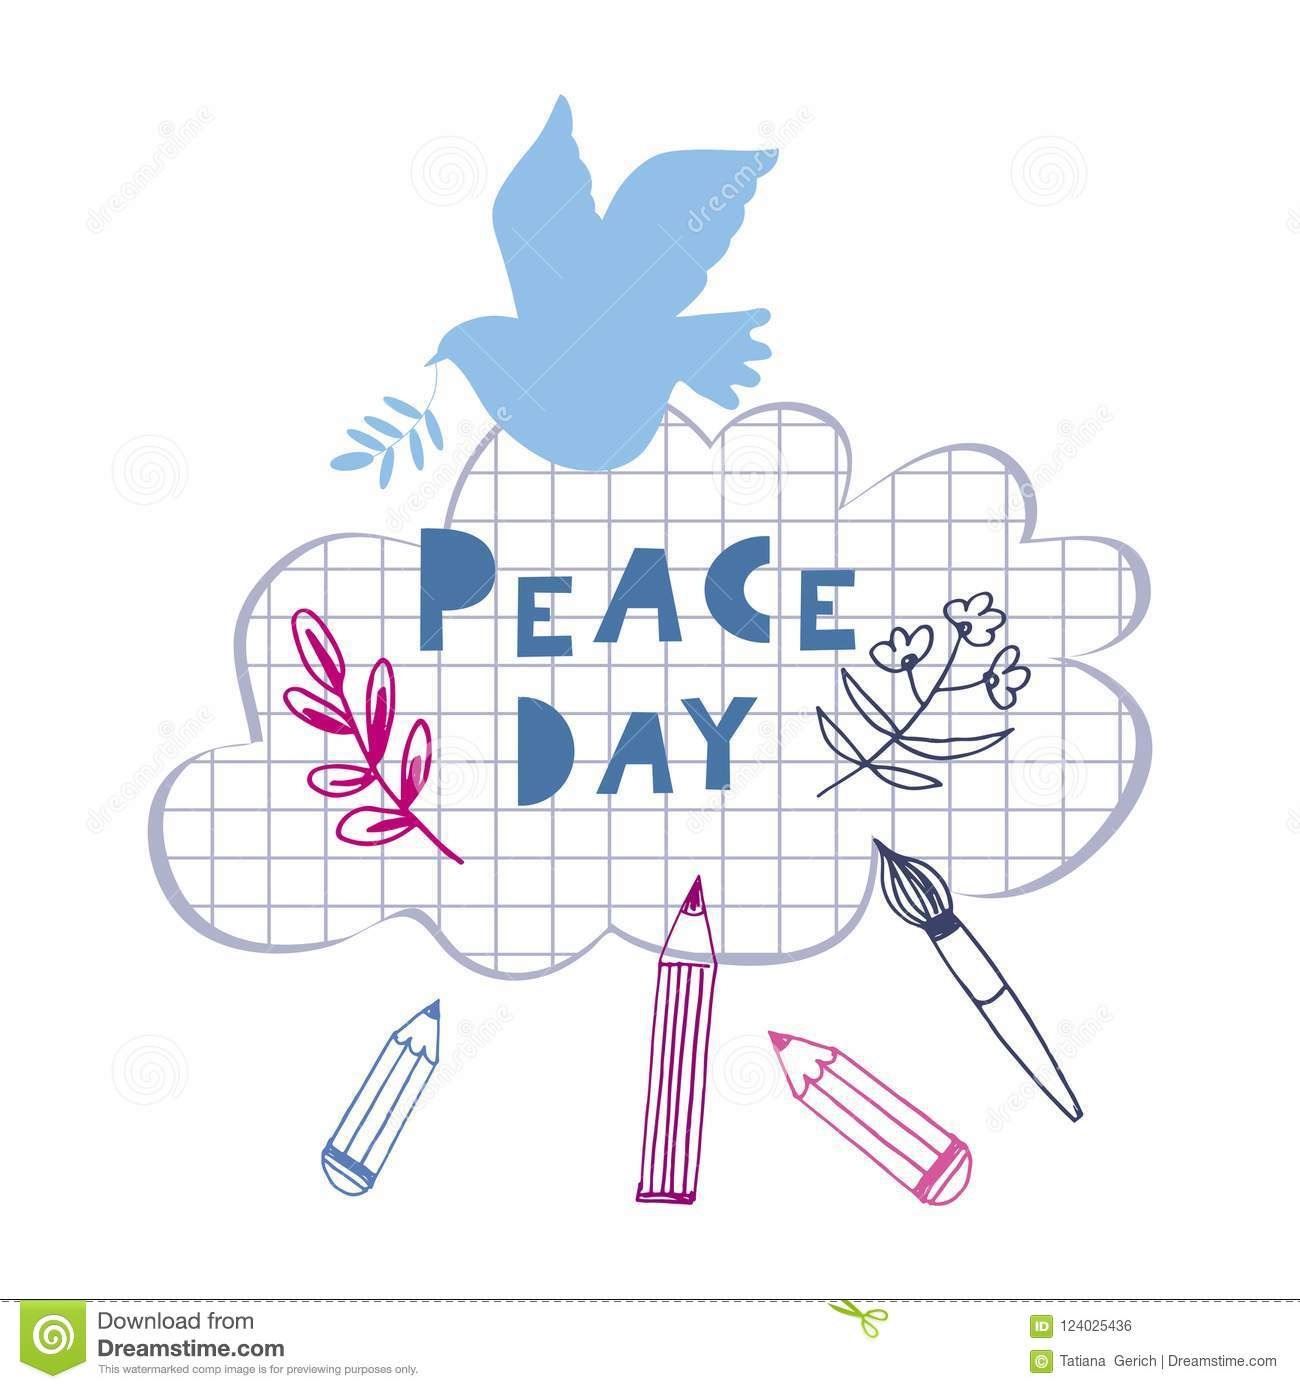 Peace day template poster stock vector. Illustration of design ...